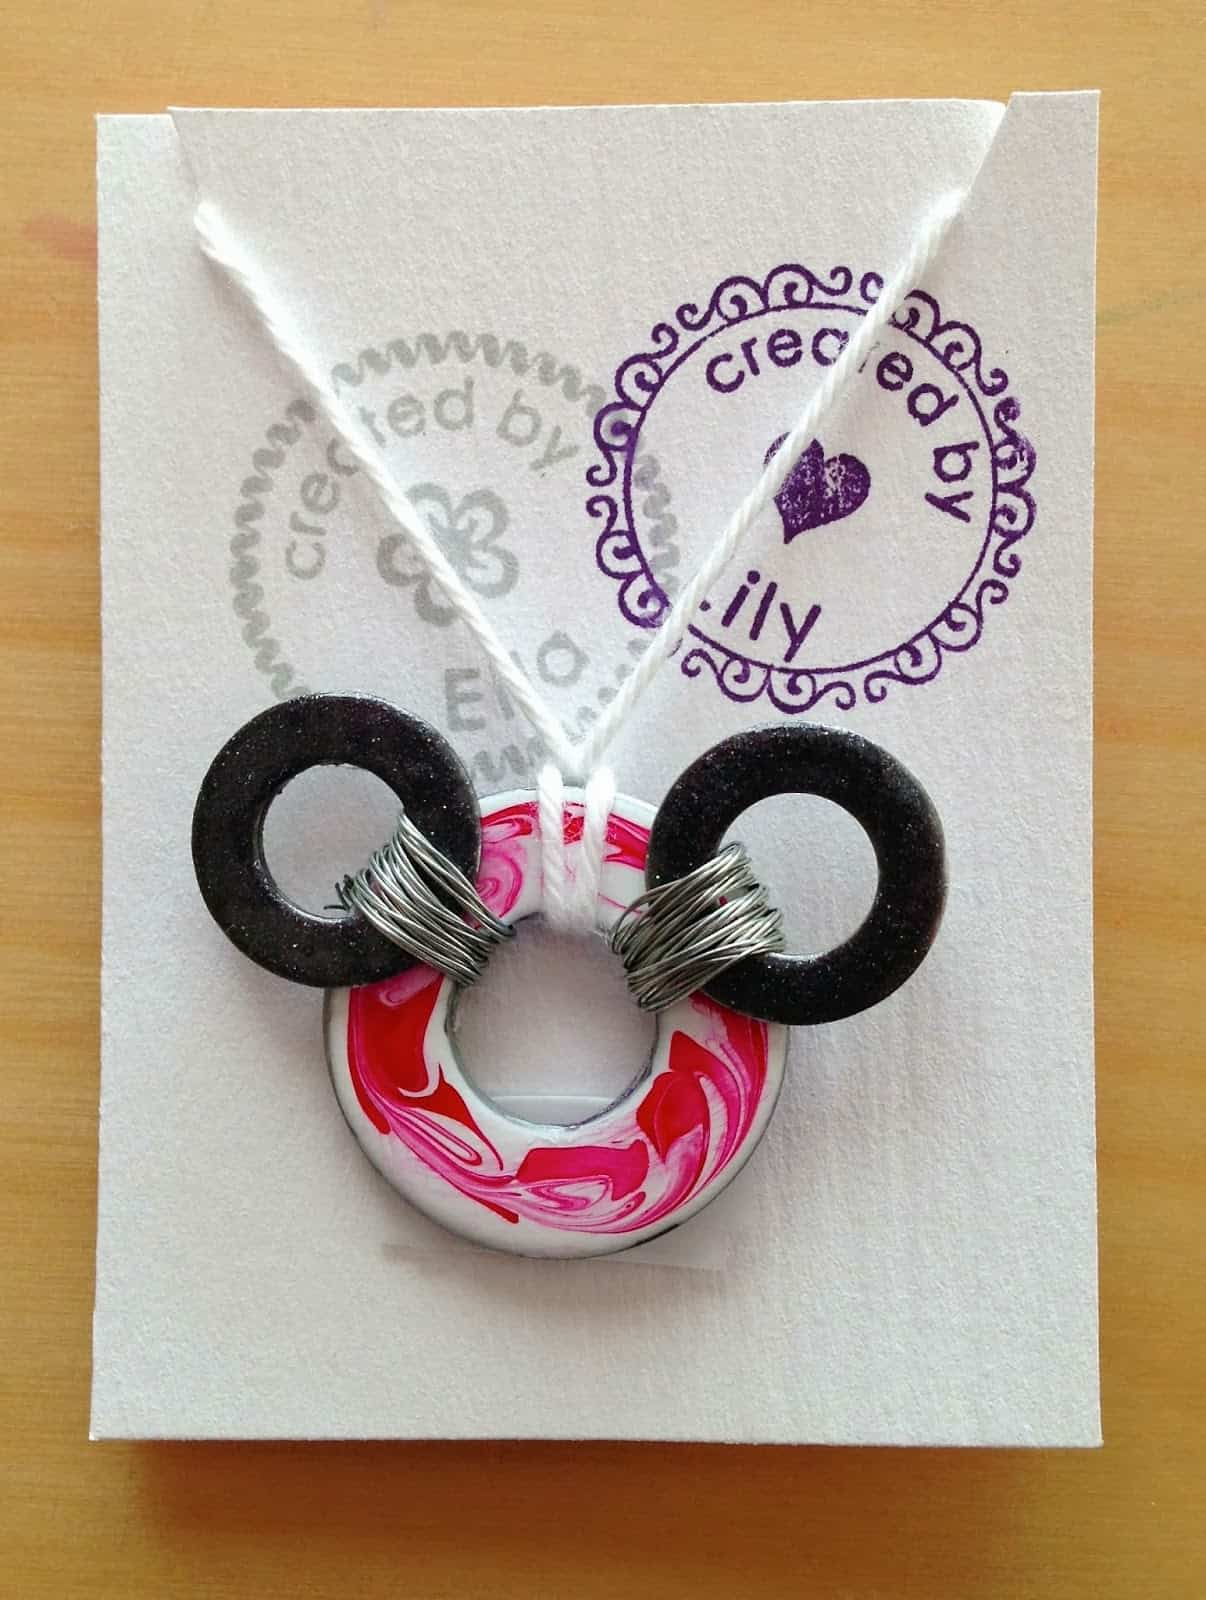 Washer and nail polish Mickey Mouse necklace